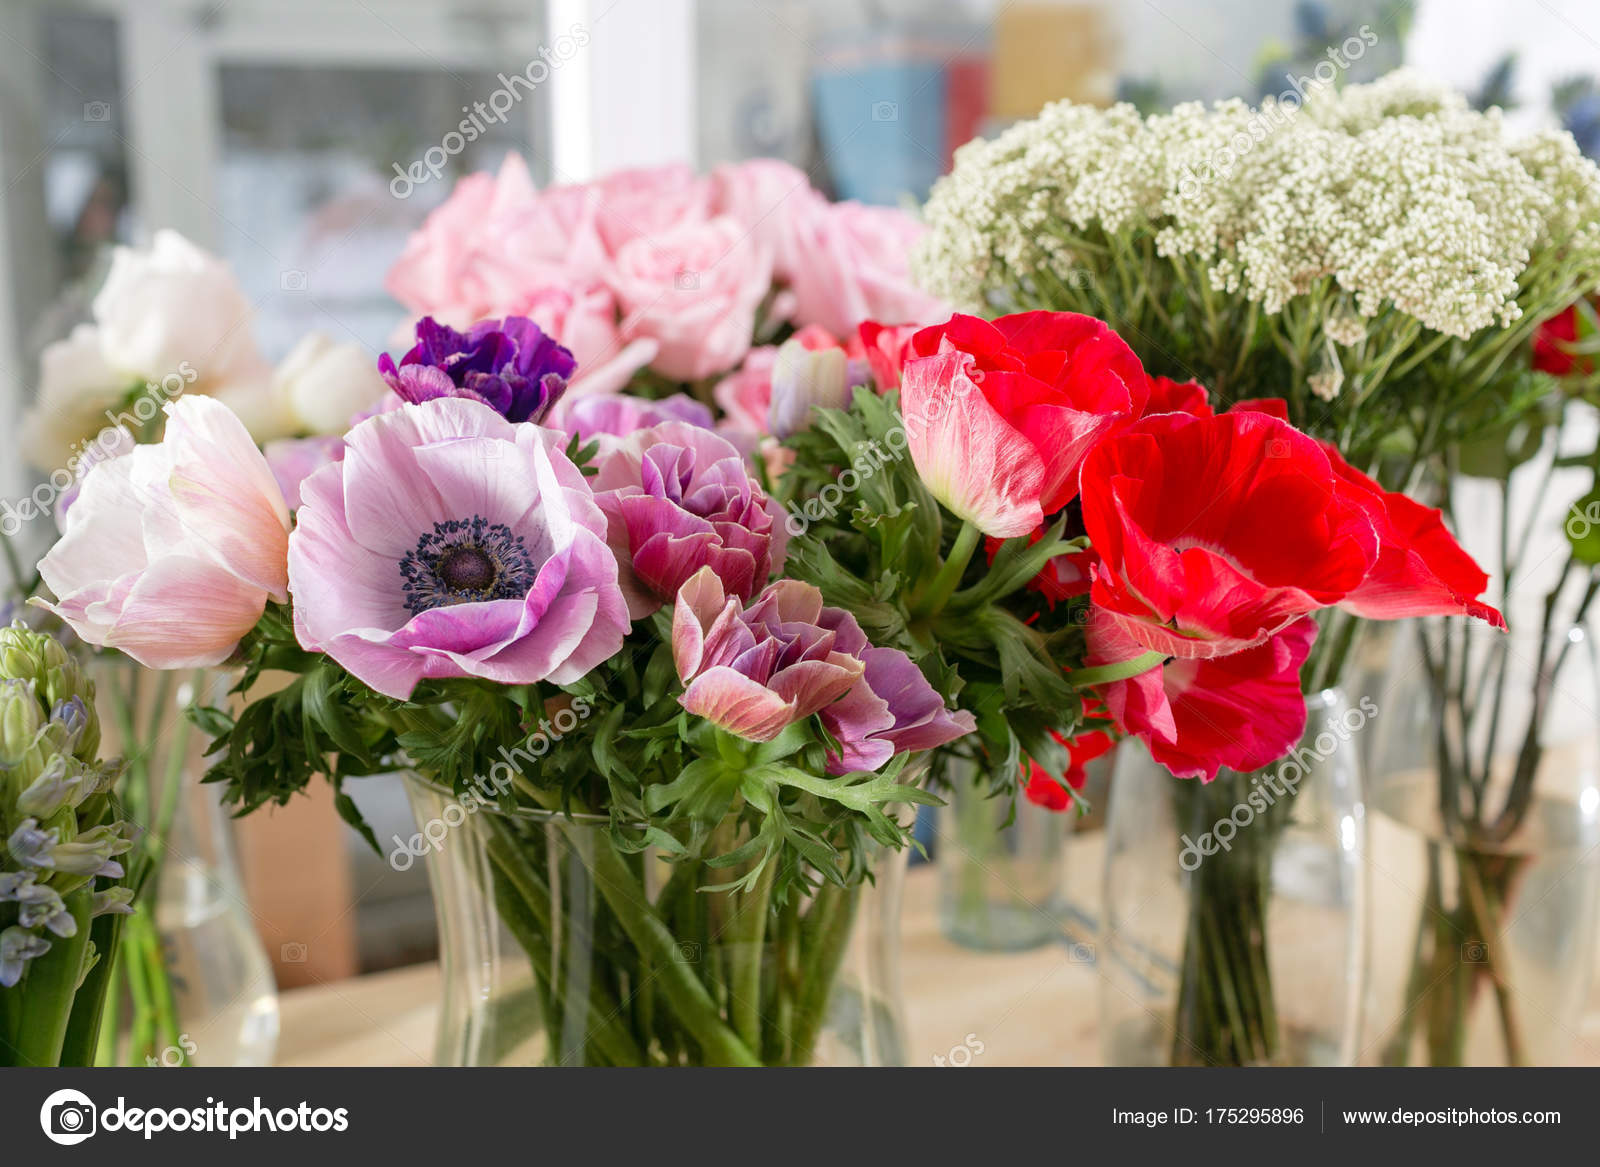 Different varieties fresh spring flowers in refrigerator for fresh spring flowers in refrigerator for flowers in flower shop bouquets on shelf florist business photo by malkovkosta mightylinksfo